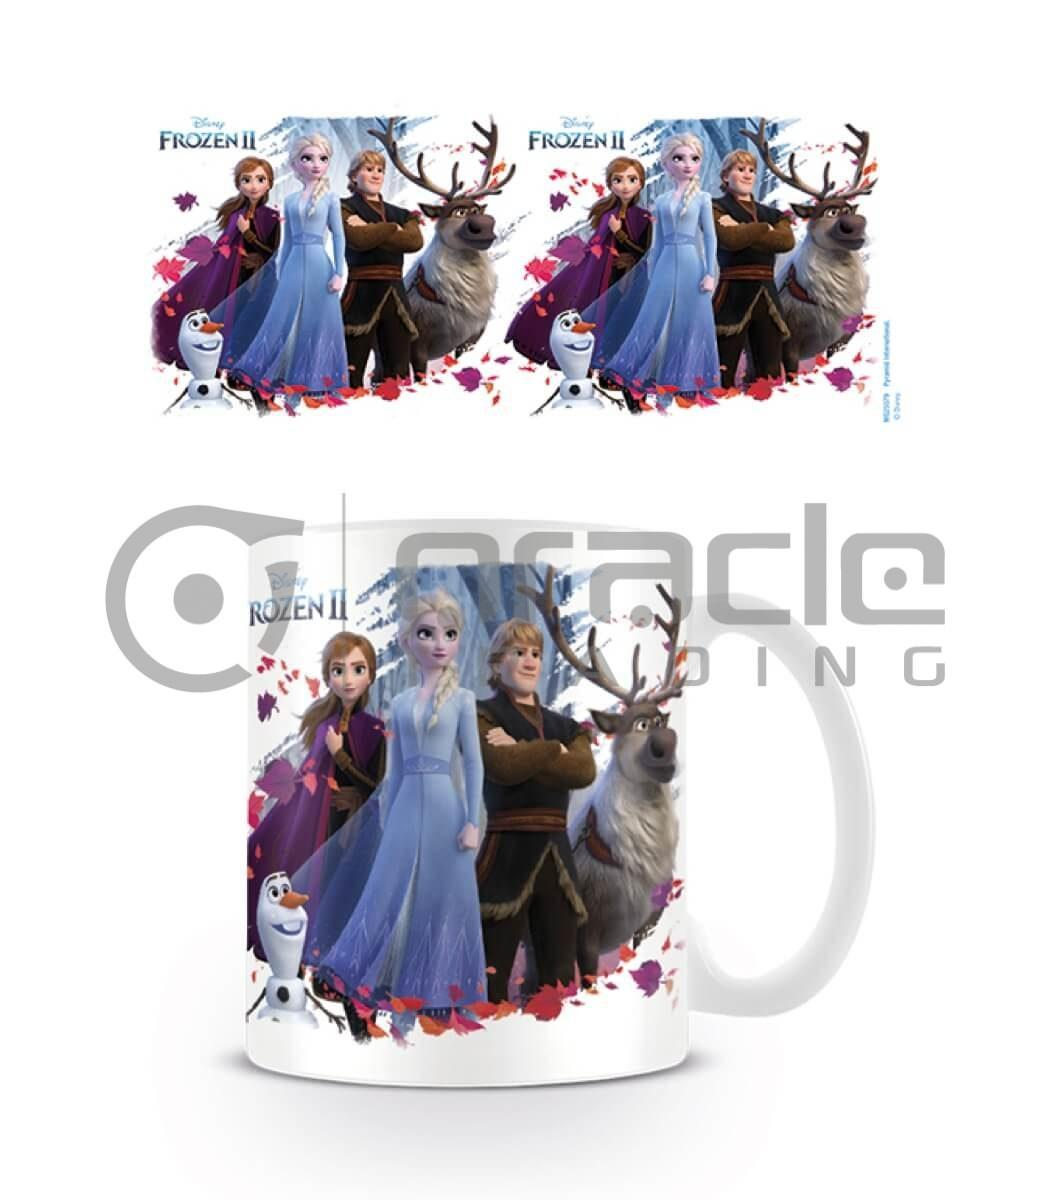 Frozen Mug - Frozen II Group